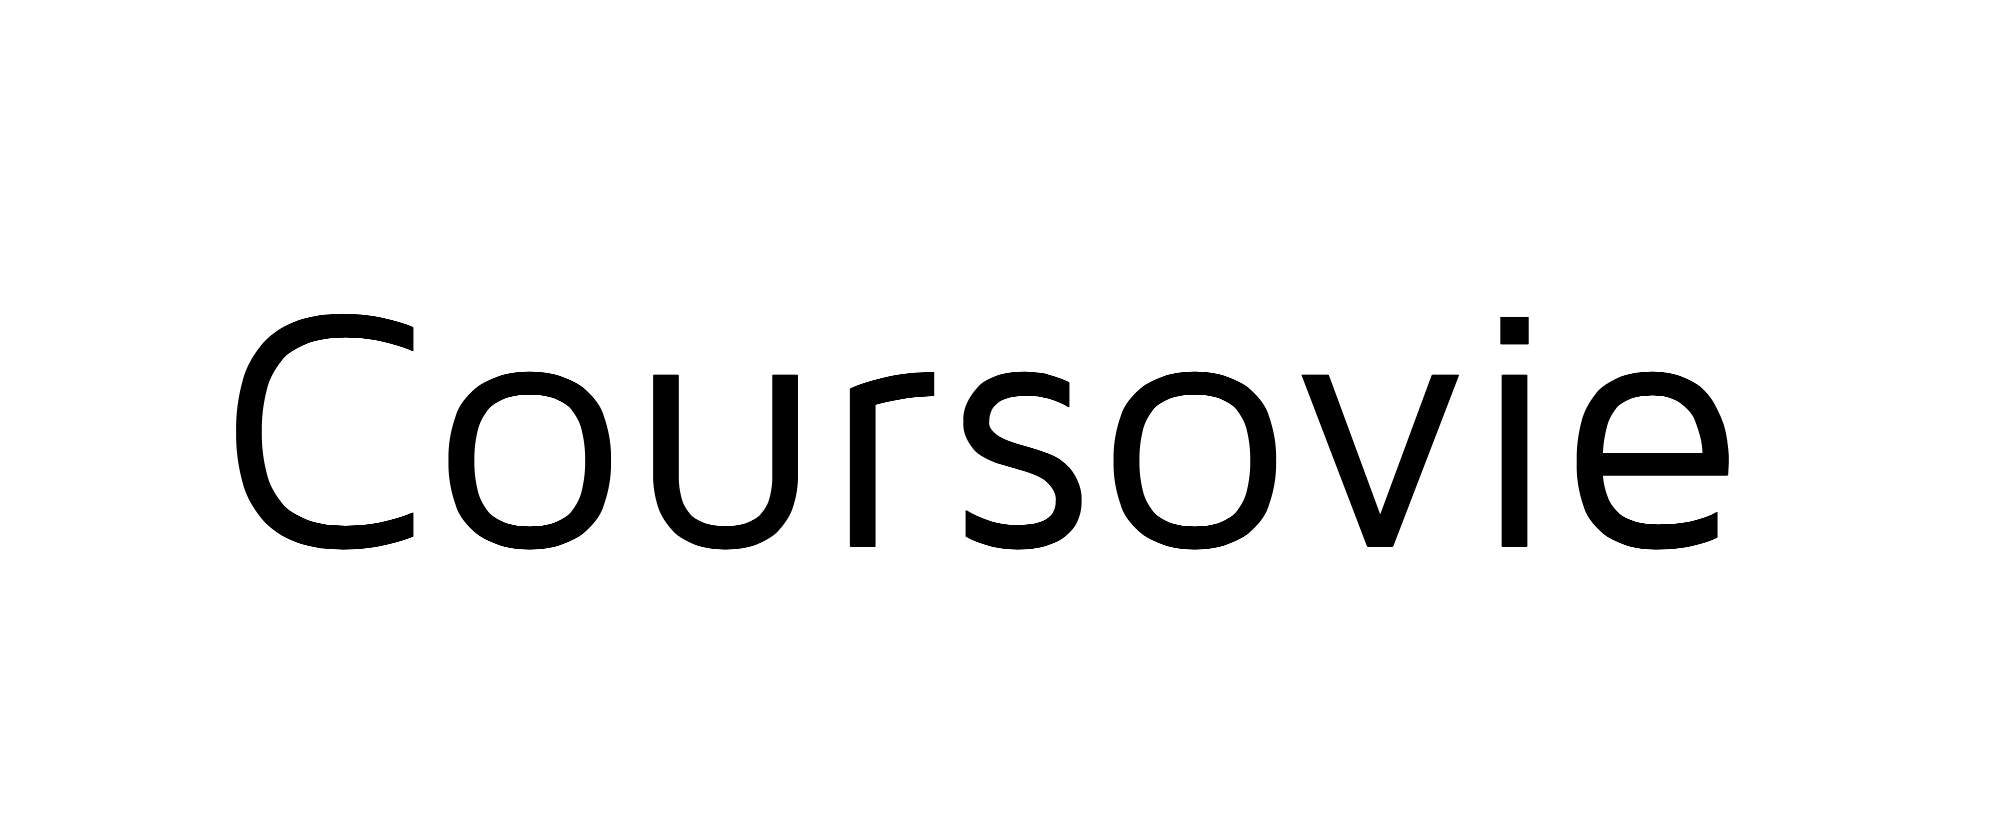 Coursovie